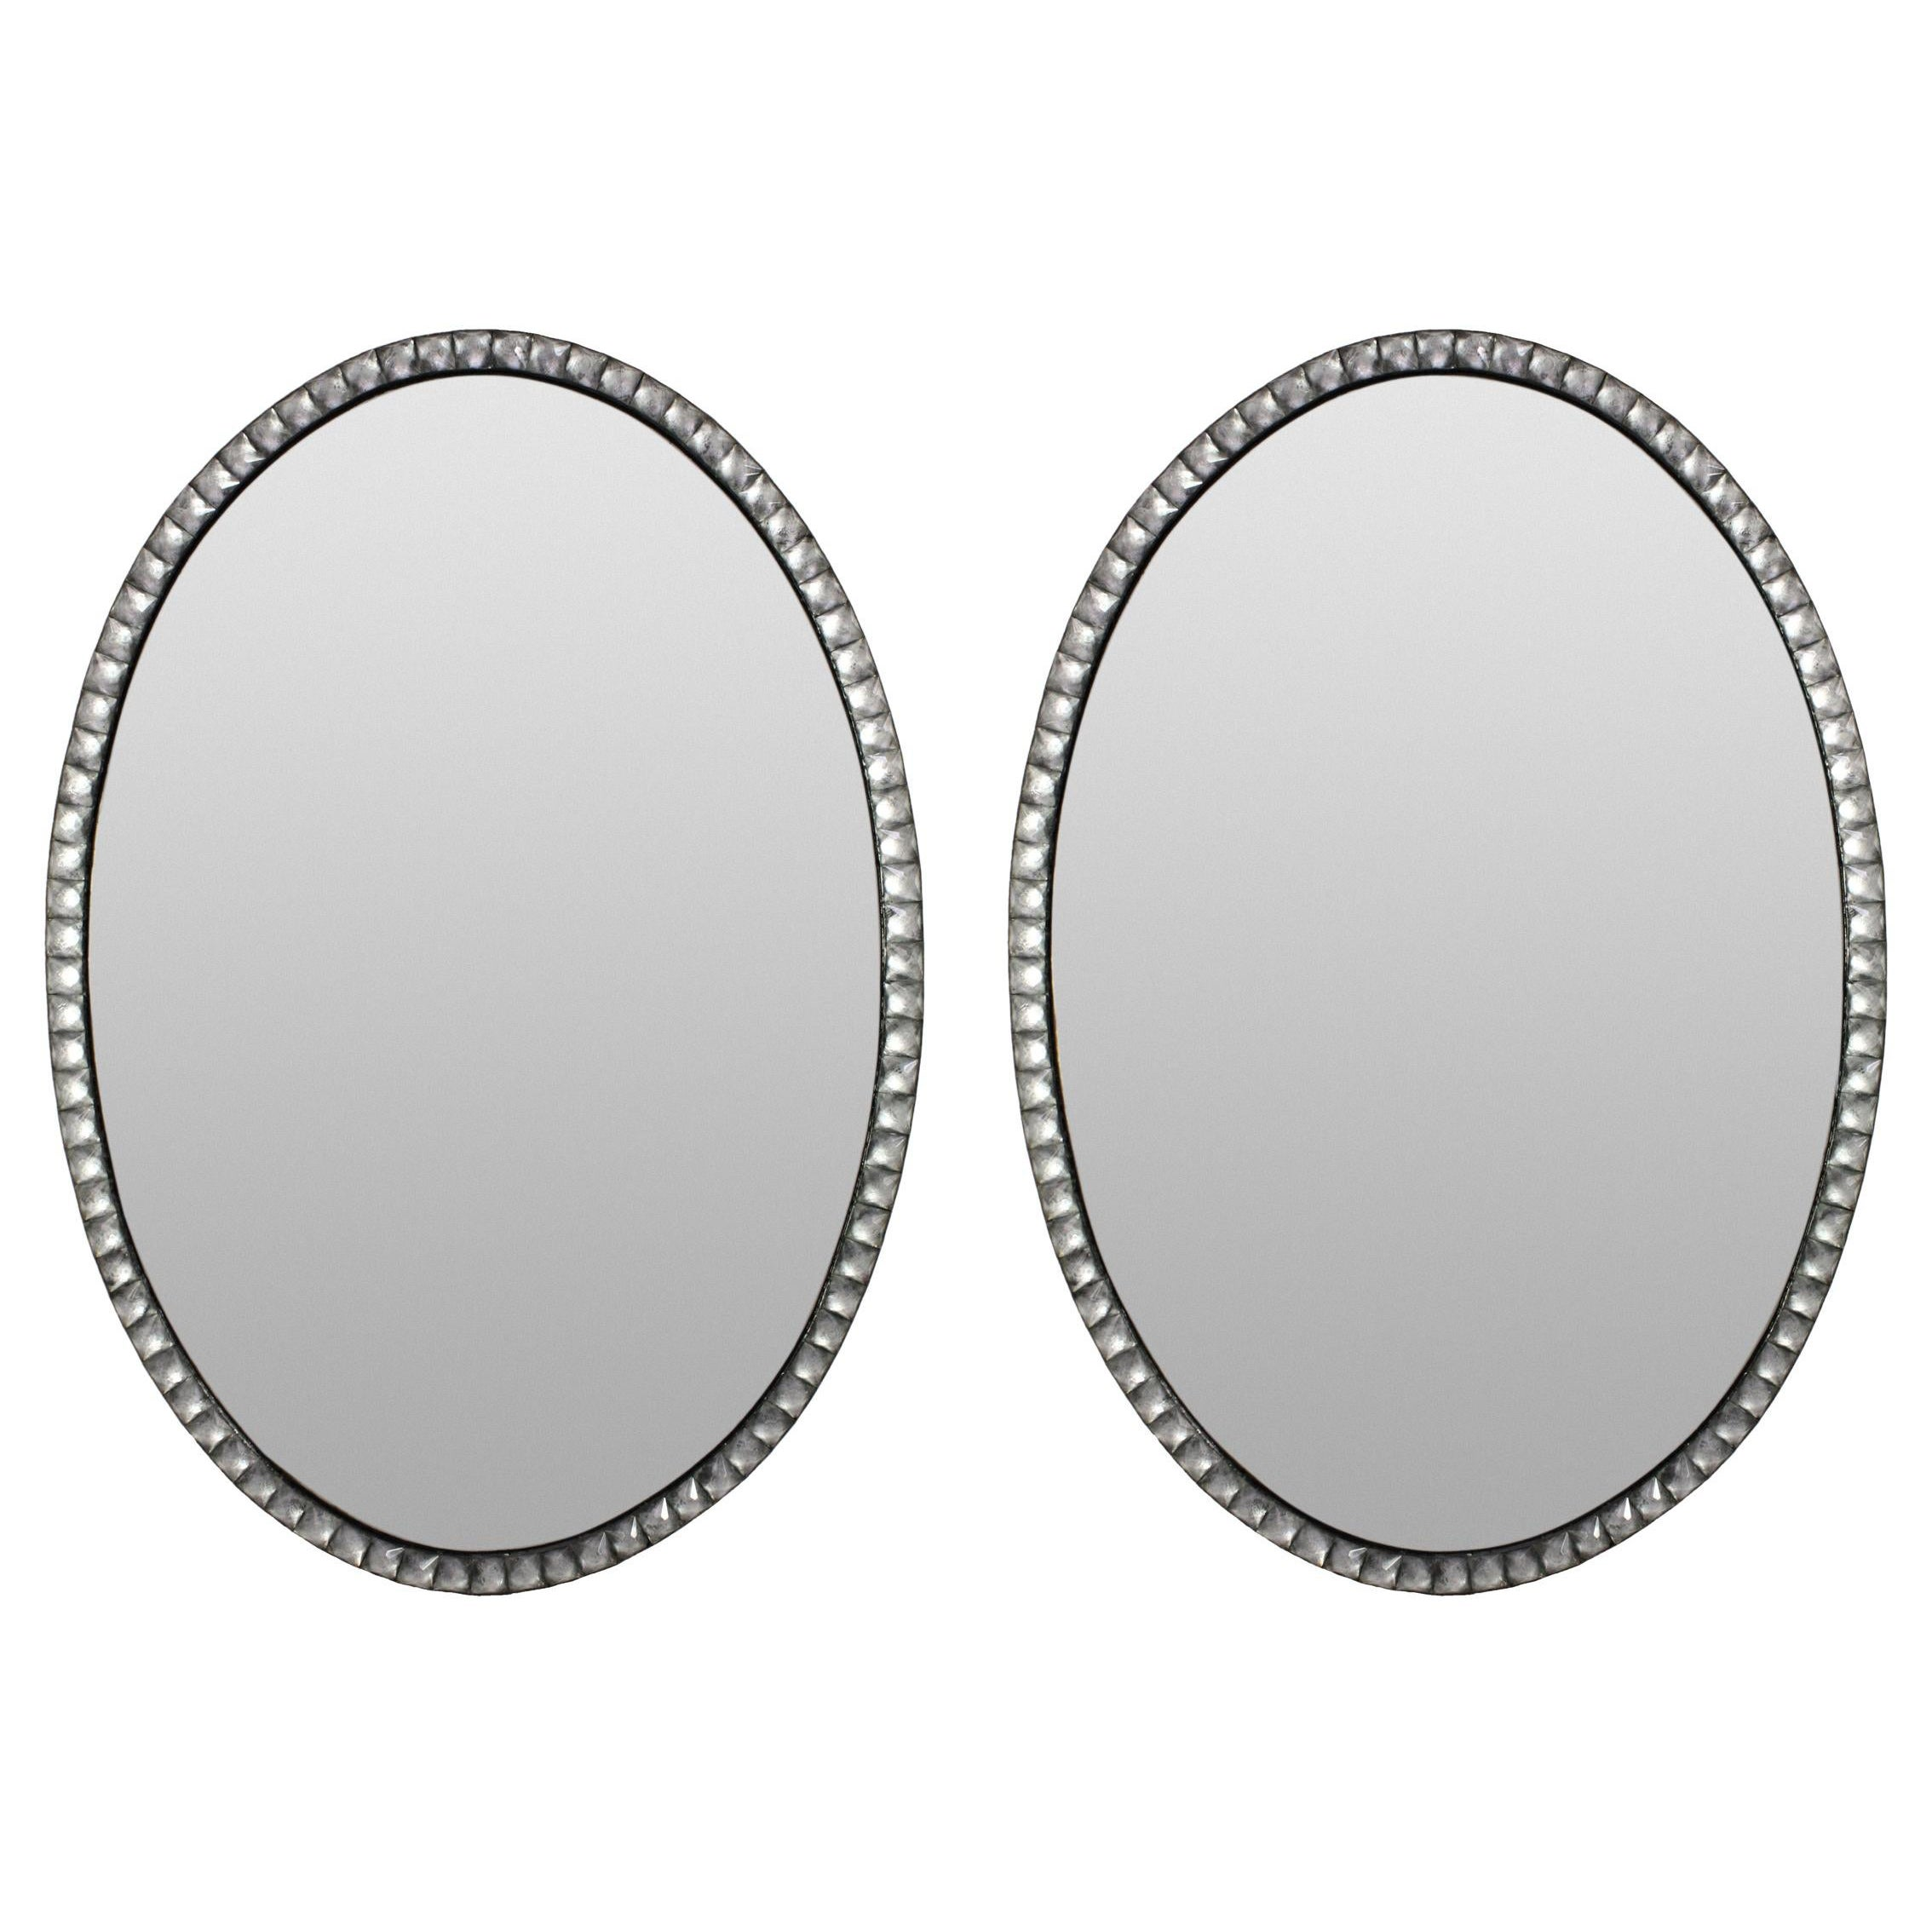 Pair of Georgian Style Irish Mirrors with Rock Crystal Faceted Borders